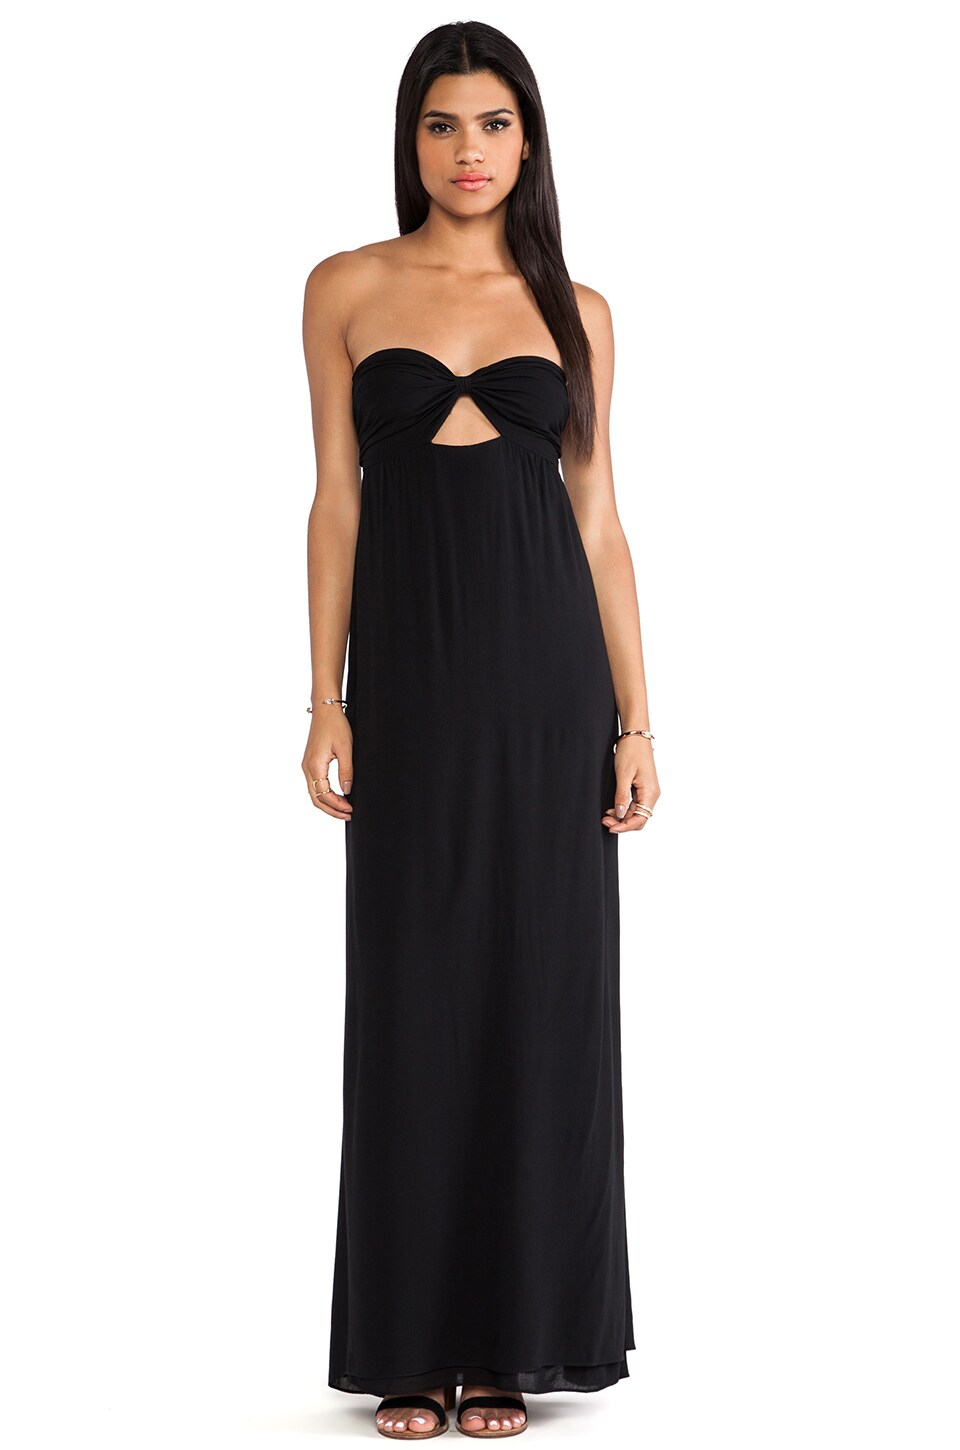 Boulee Zoe Strapless Maxi Dress in Butter Black